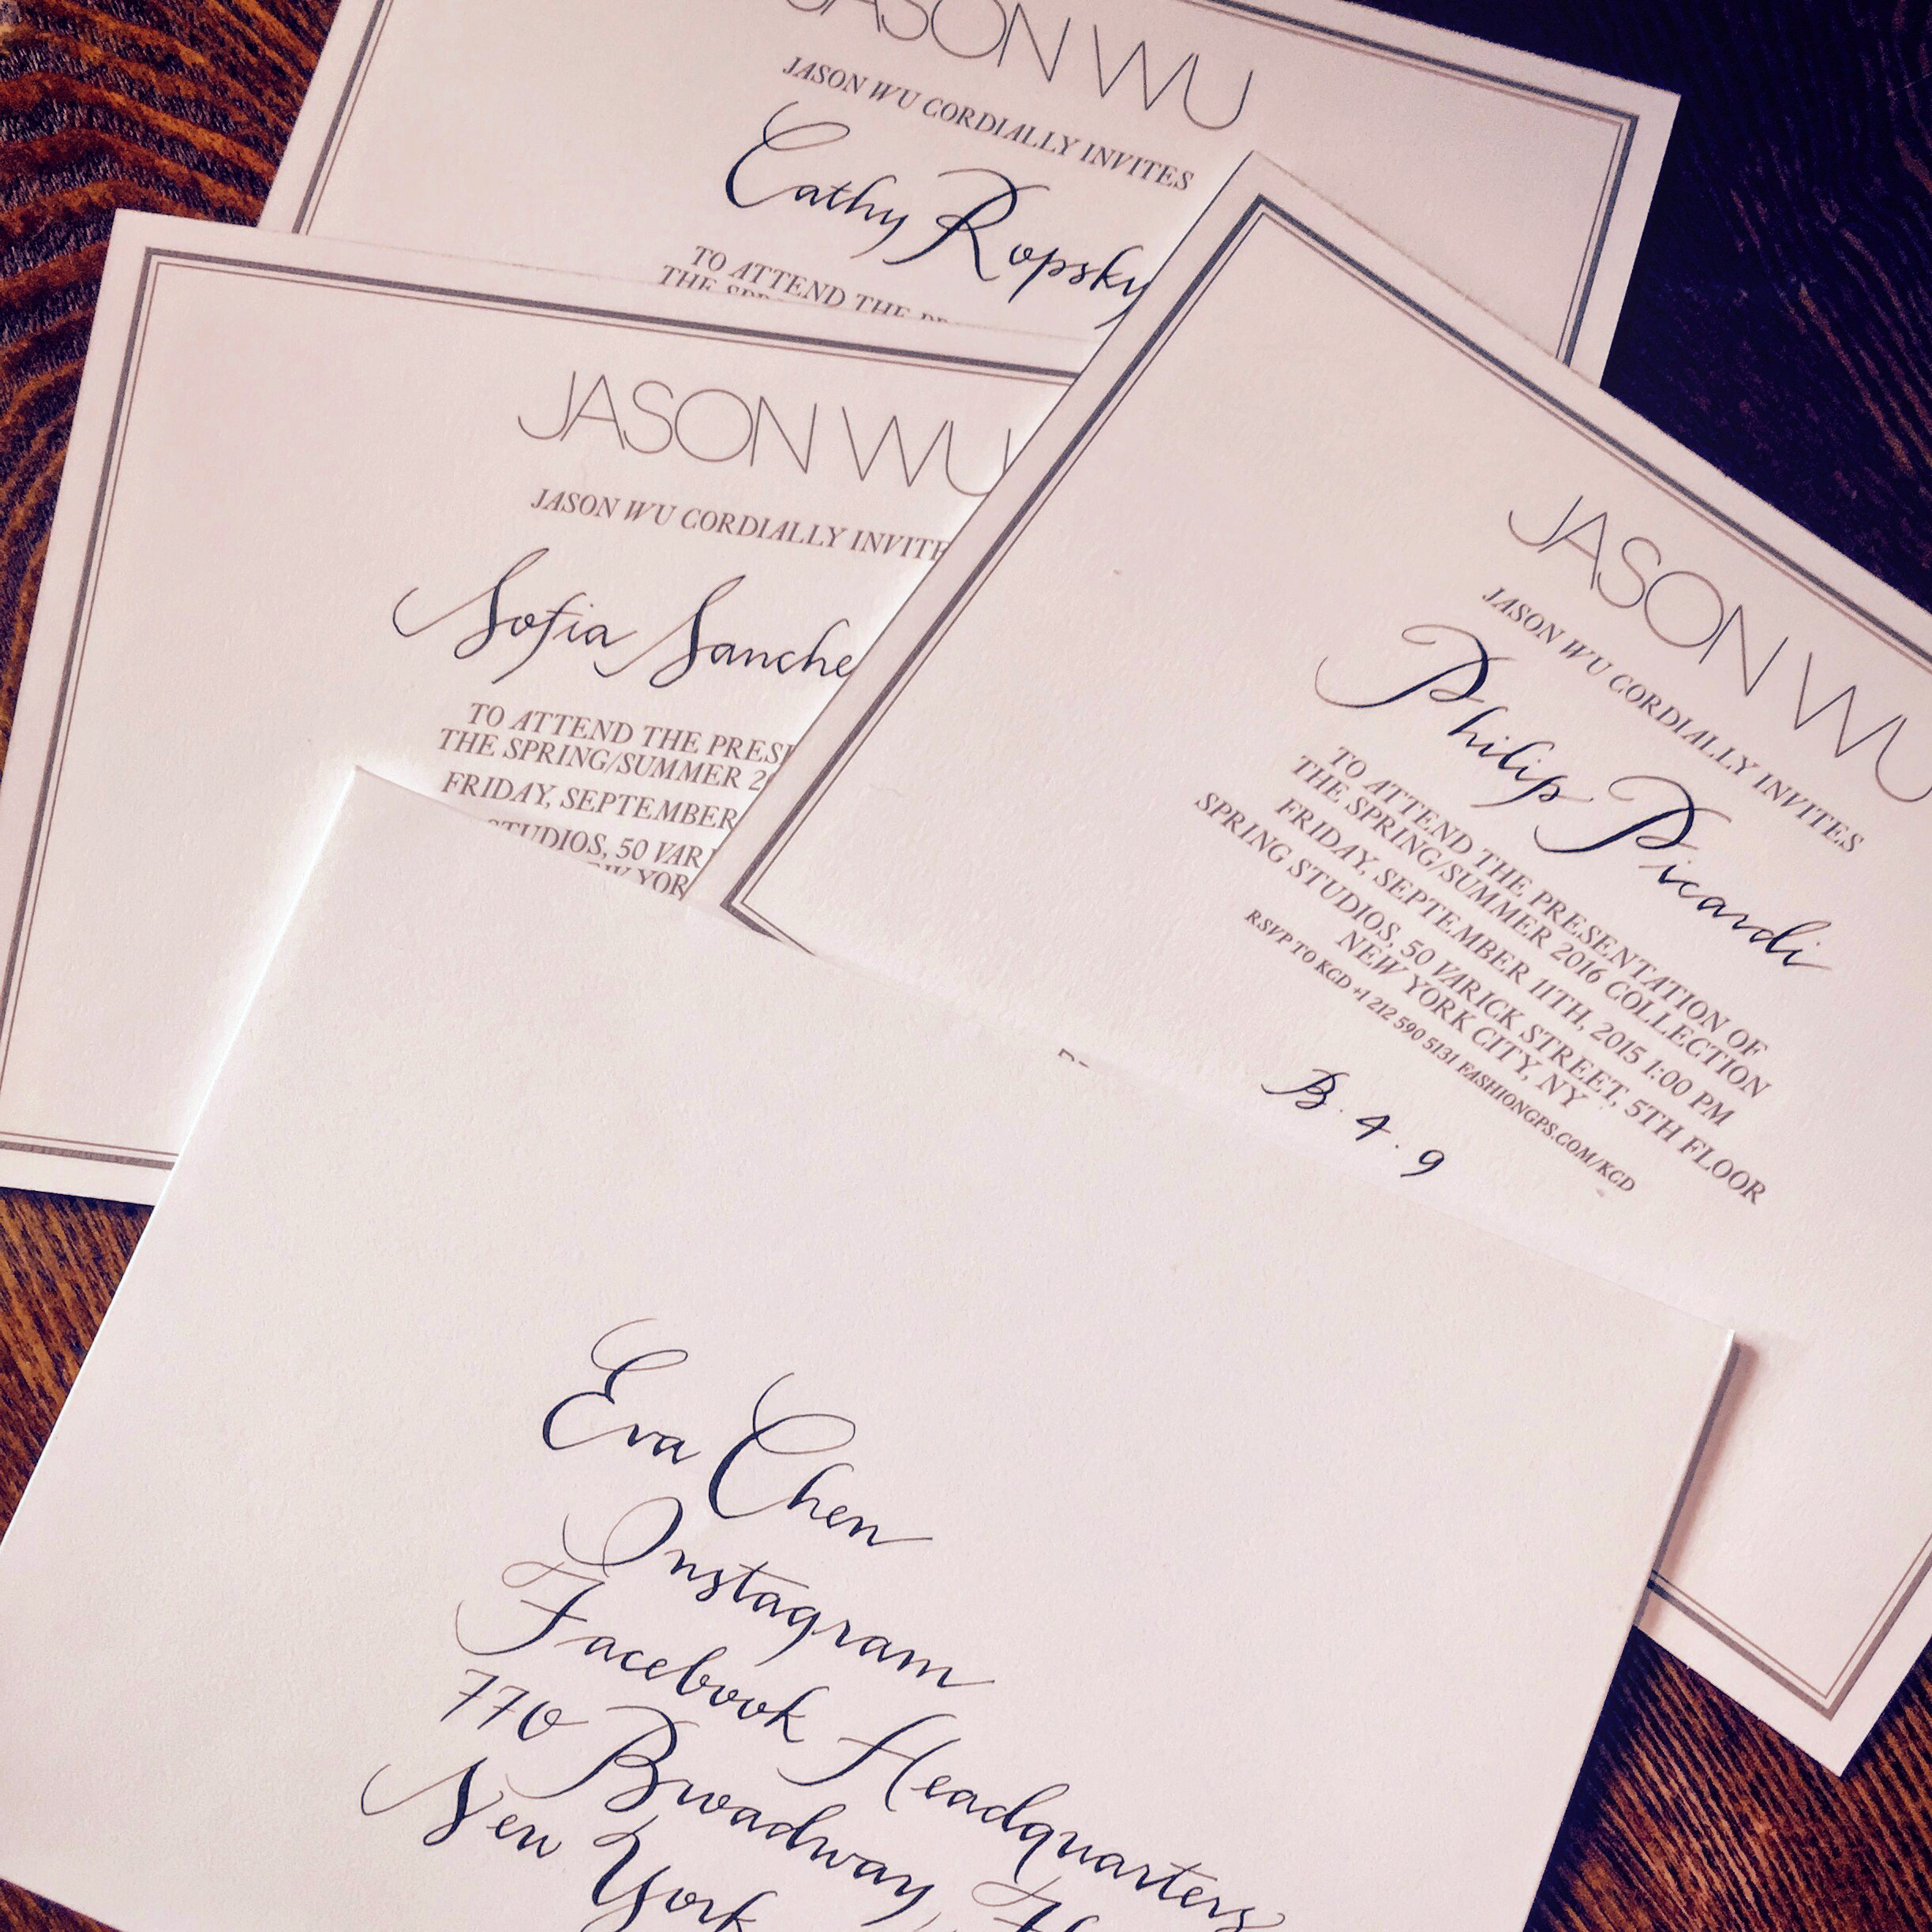 Jason Wu Invitations